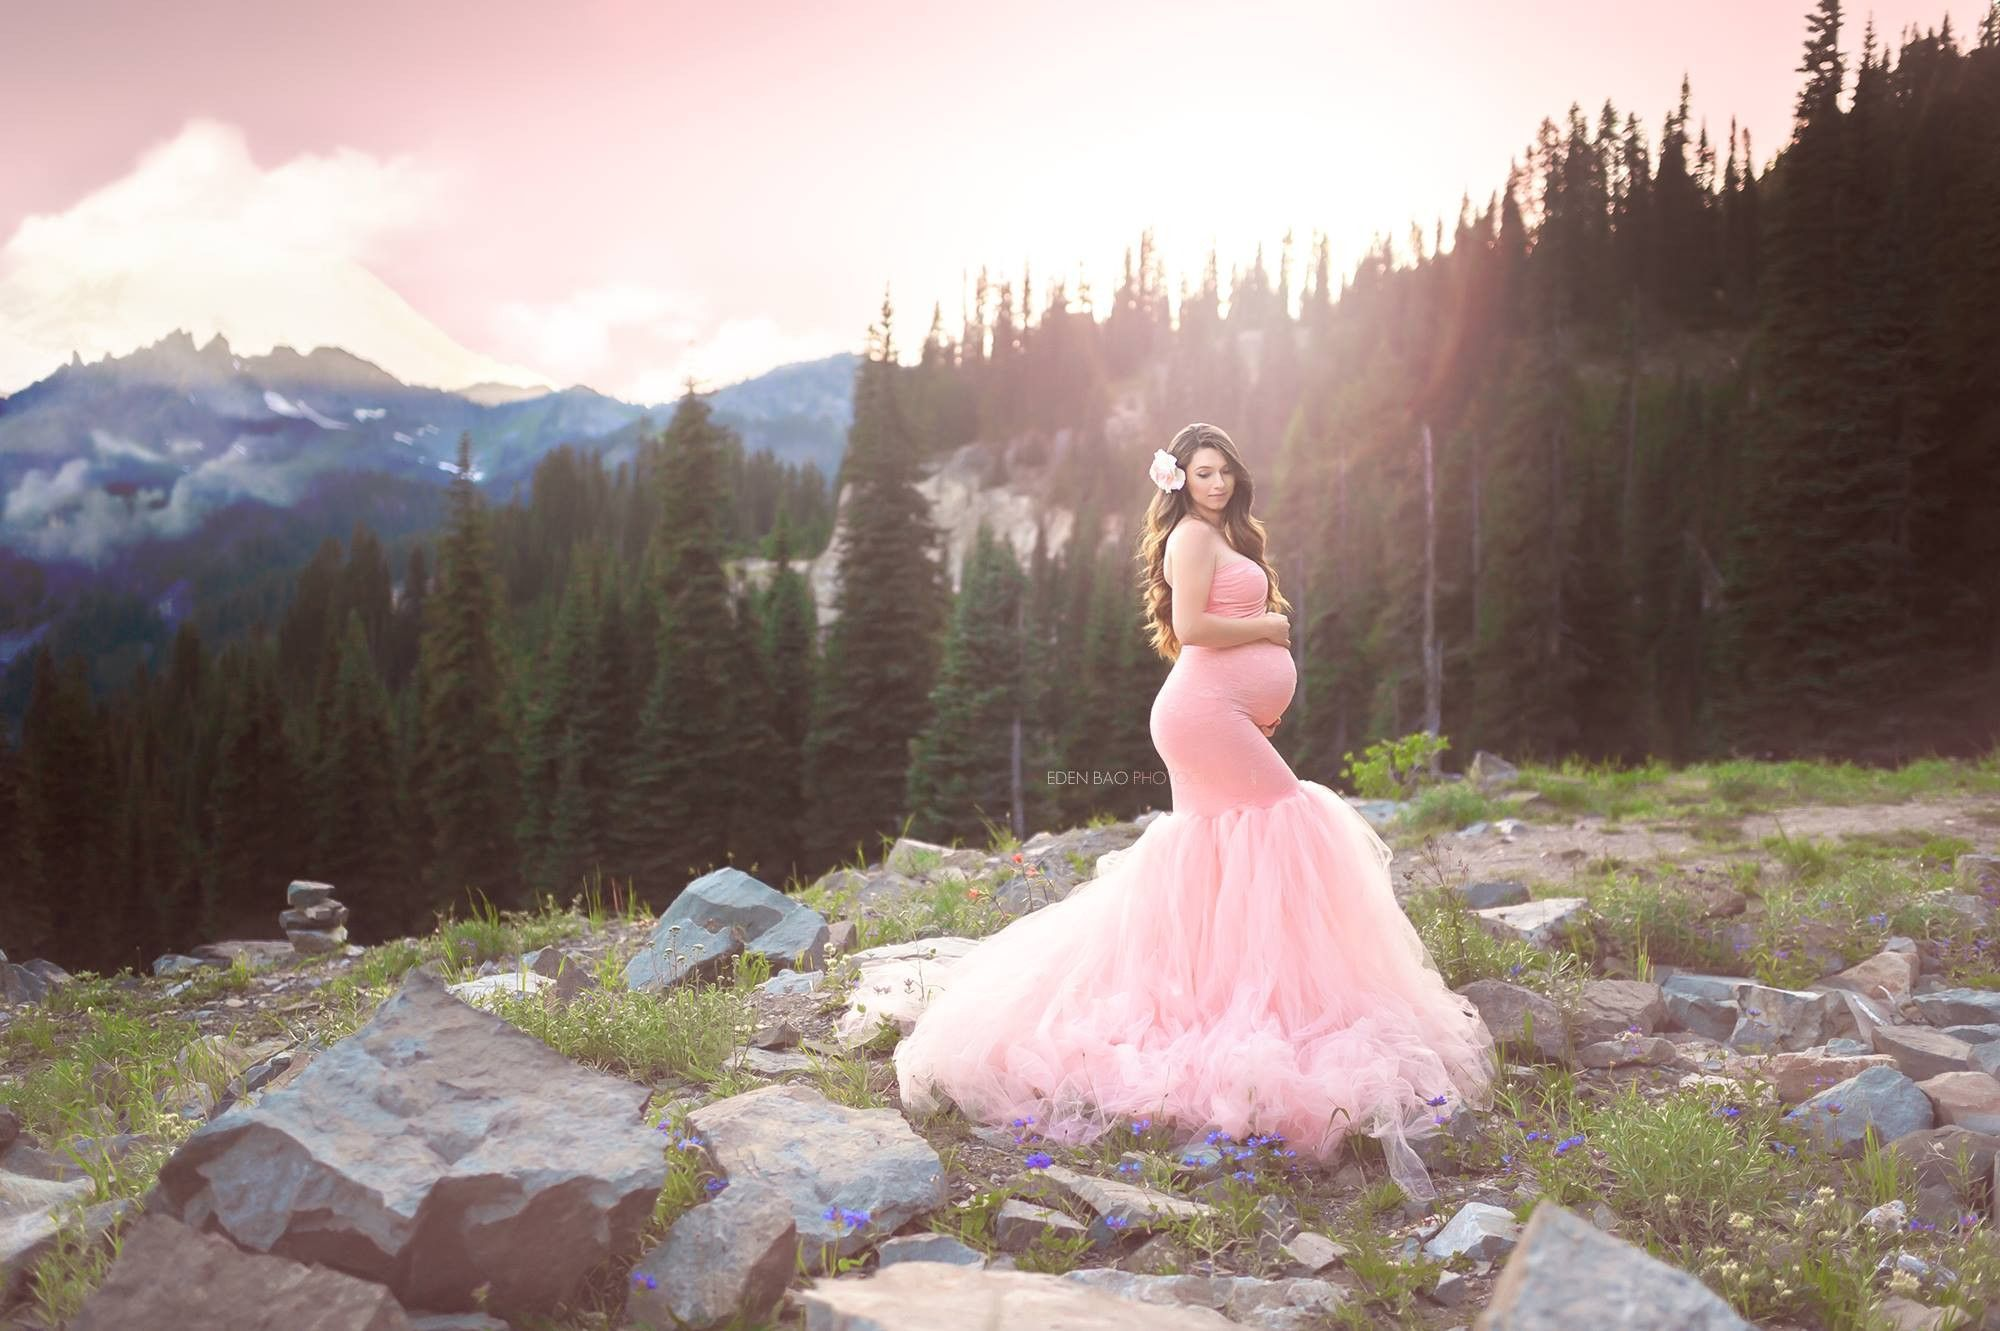 c7b2a3606fe Celine Gown • Sweetheart Lace and Tulle Pregnancy Dress • Fitted Mermaid  Style Maternity Gown • by Sew Trendy